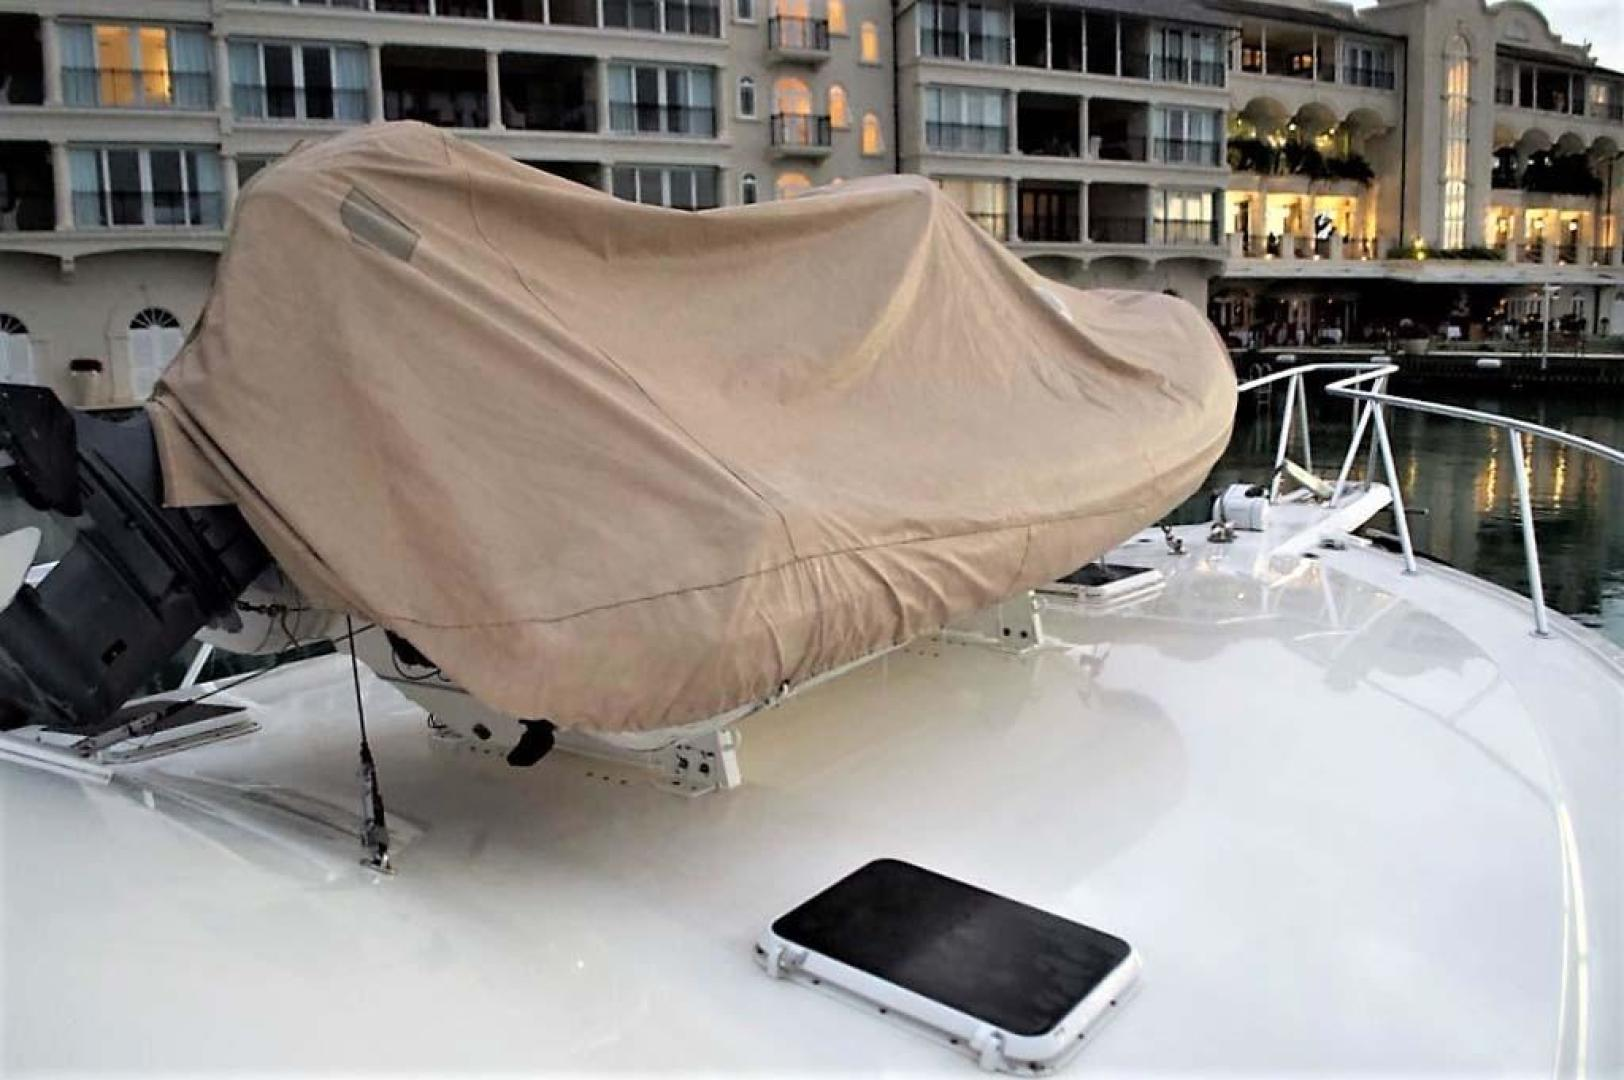 Ocean-Yachts-53-Super-Sport-1998-Made-in-the-Shade-Stuart-United-States-Dinghy-929973